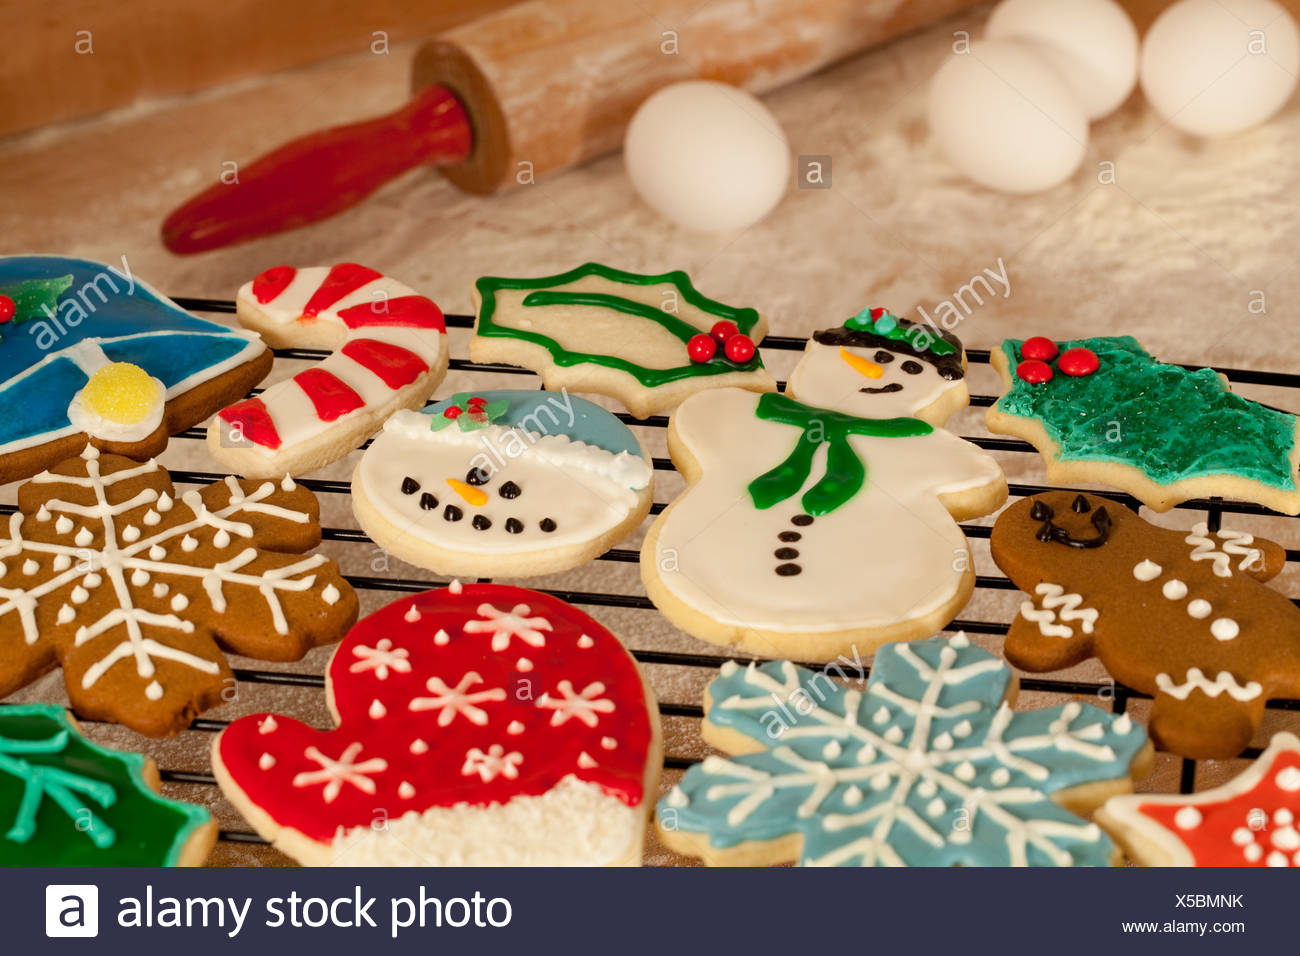 Closeup Of A Variety Of Homemade Christmas Sugar Cookies With Eggs